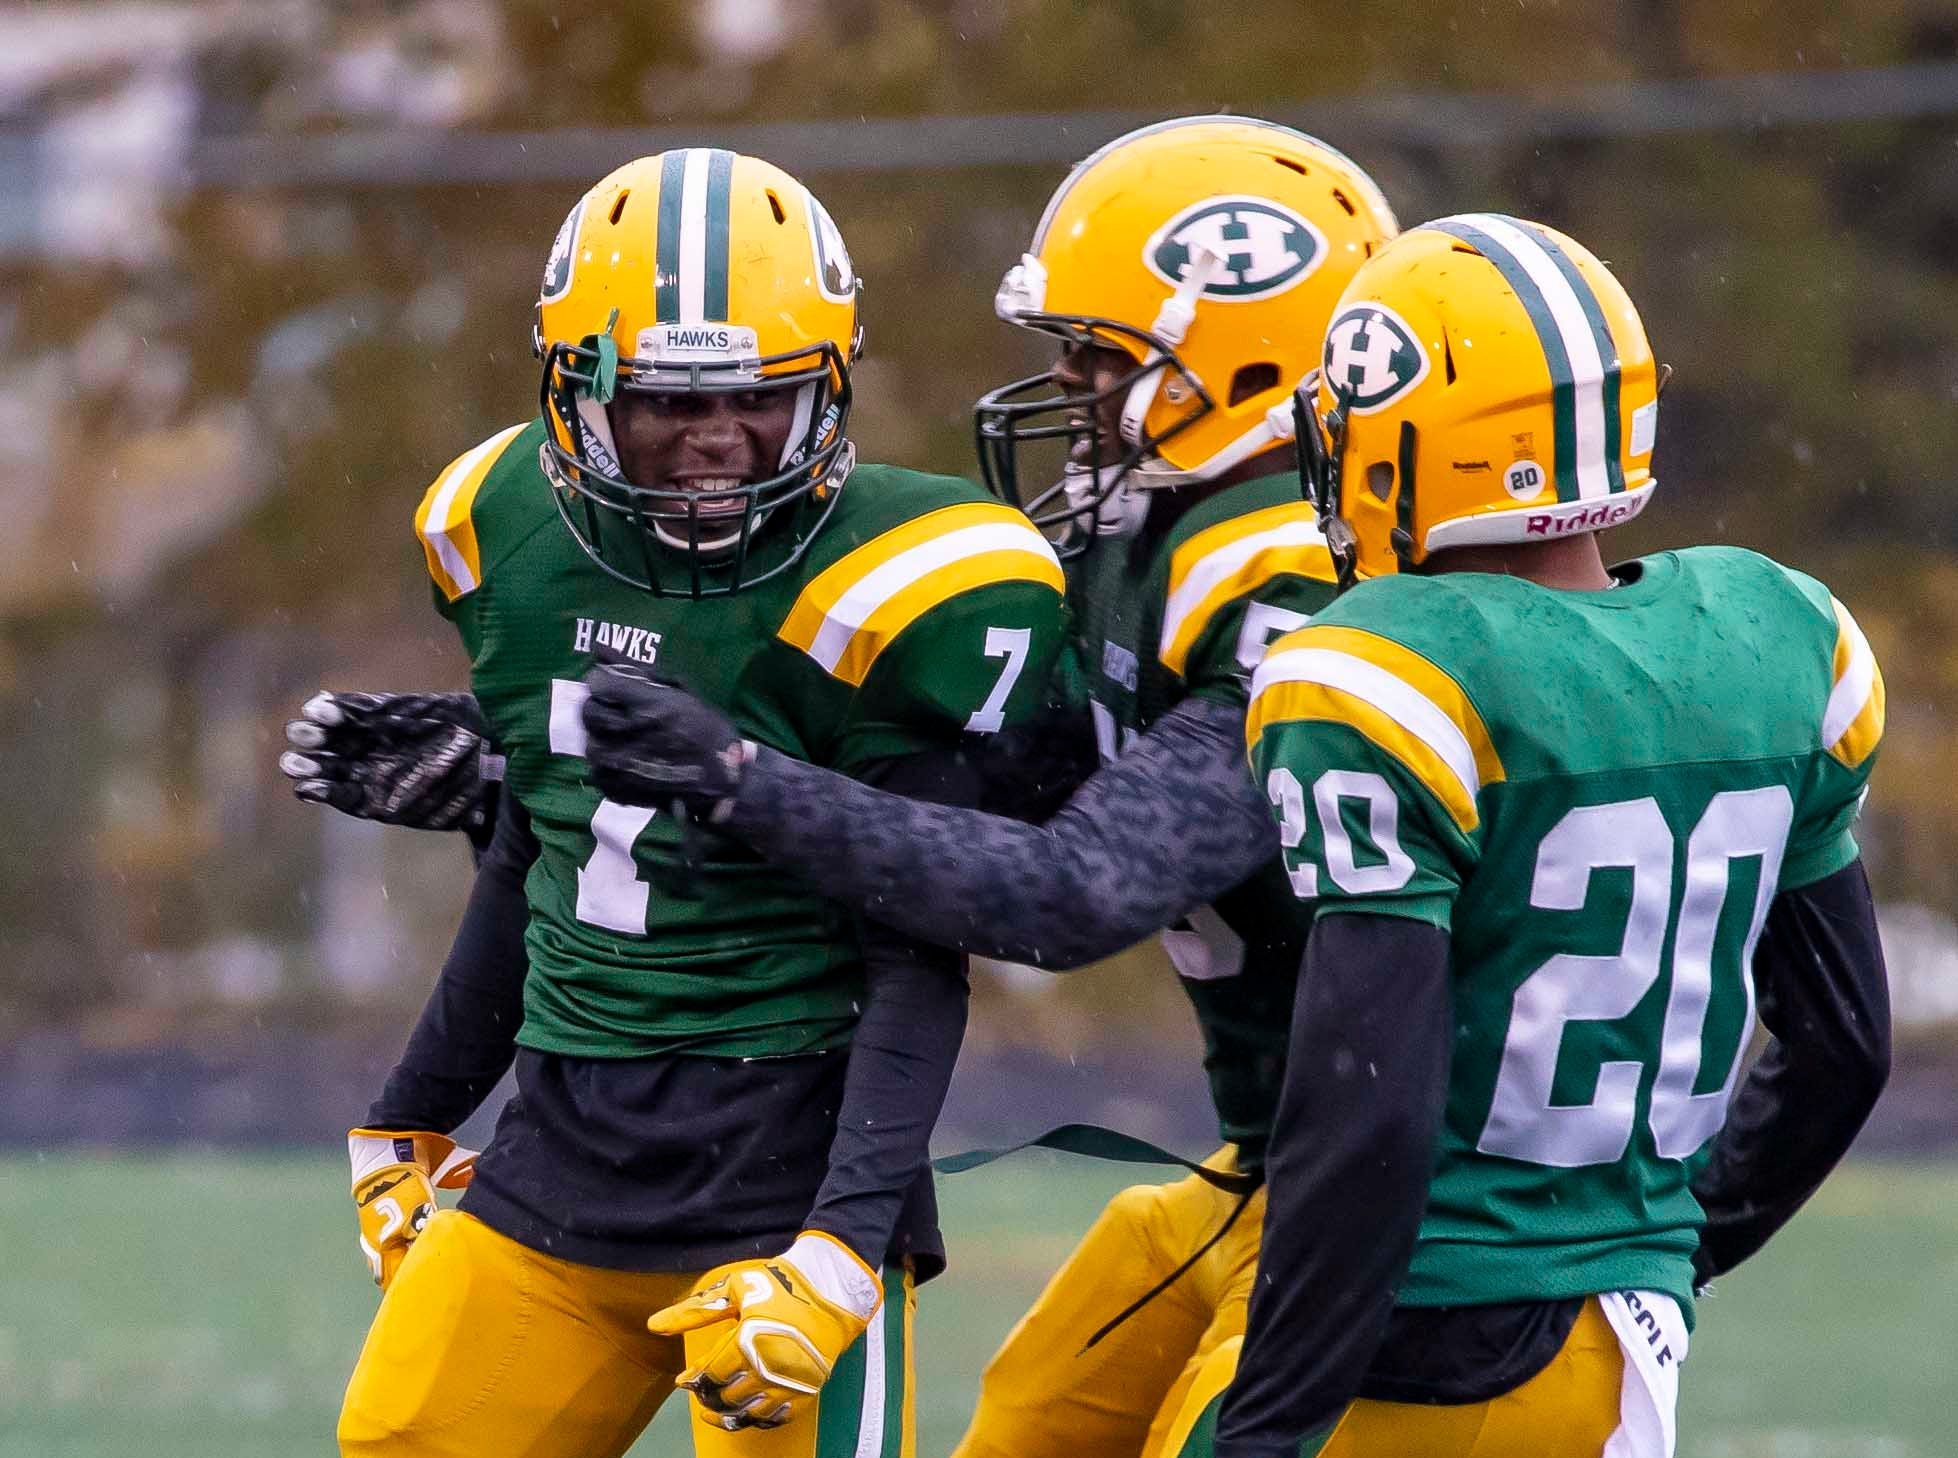 Delwuan Gaston (7) of Farmington Hills Harrison celebrates a sack in the second half against Cranbrook Kingswood with teammates Michael Alford (5) and Xavier Goldsmith (20).